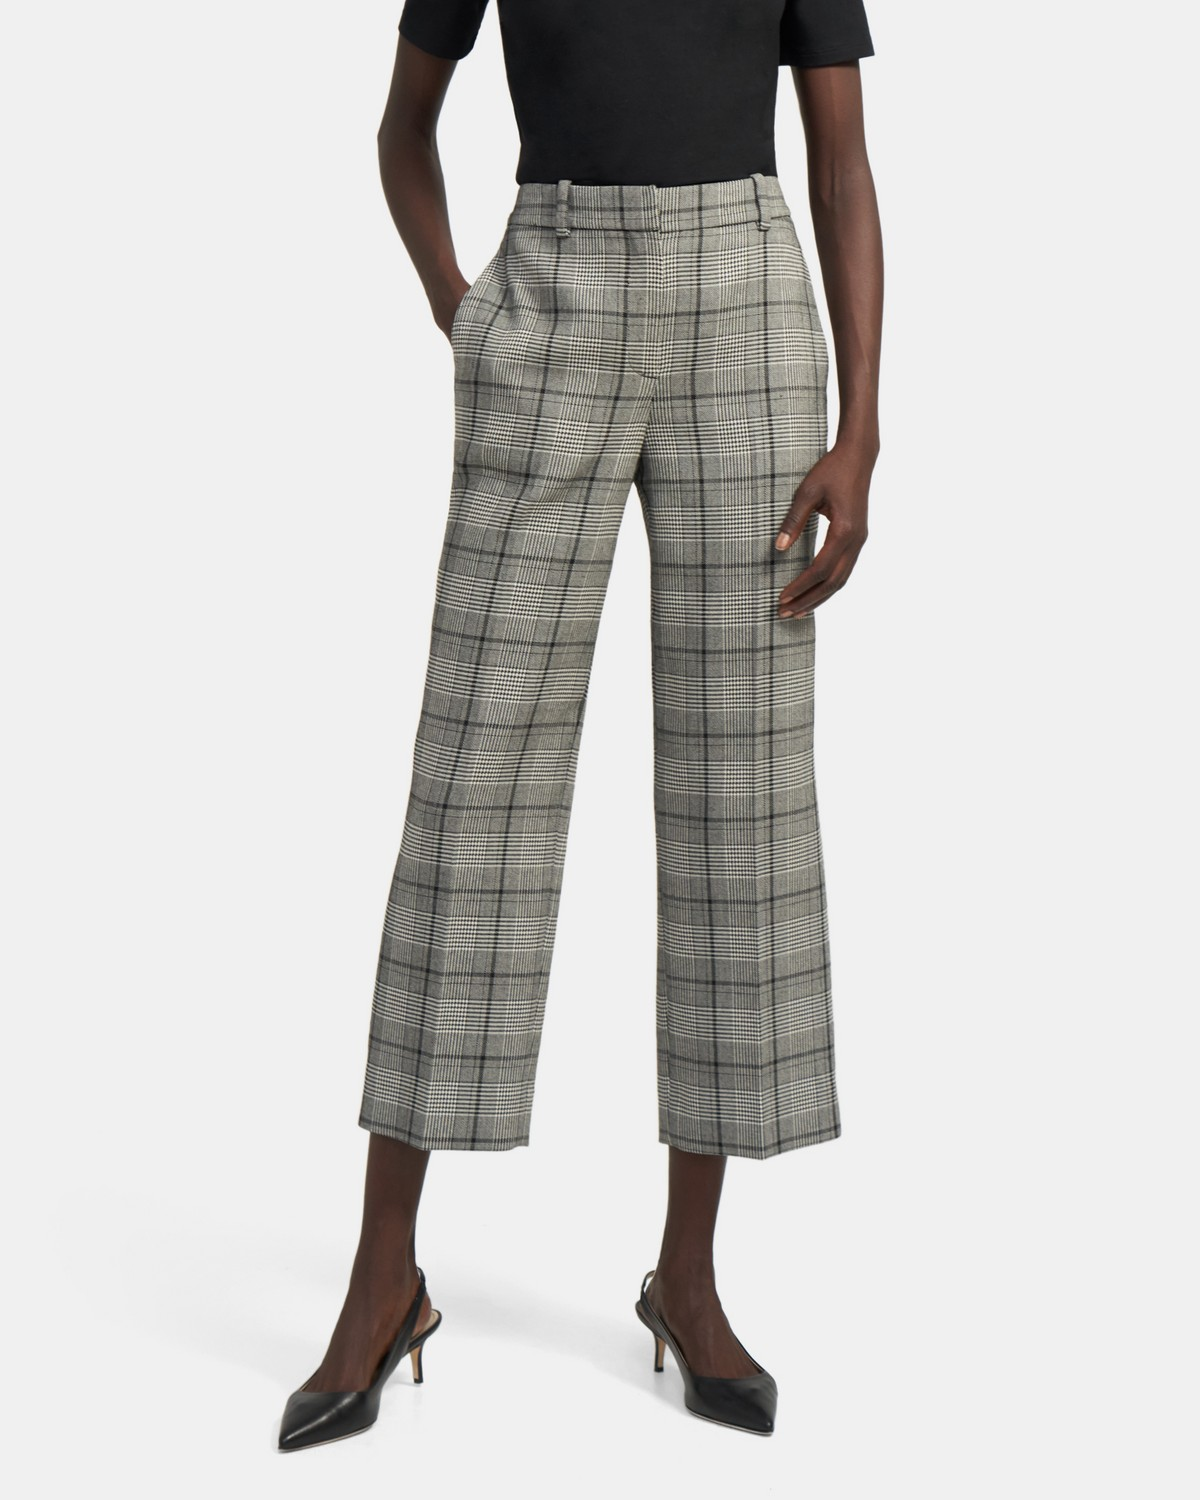 High-Waisted Straight Pant In Plaid